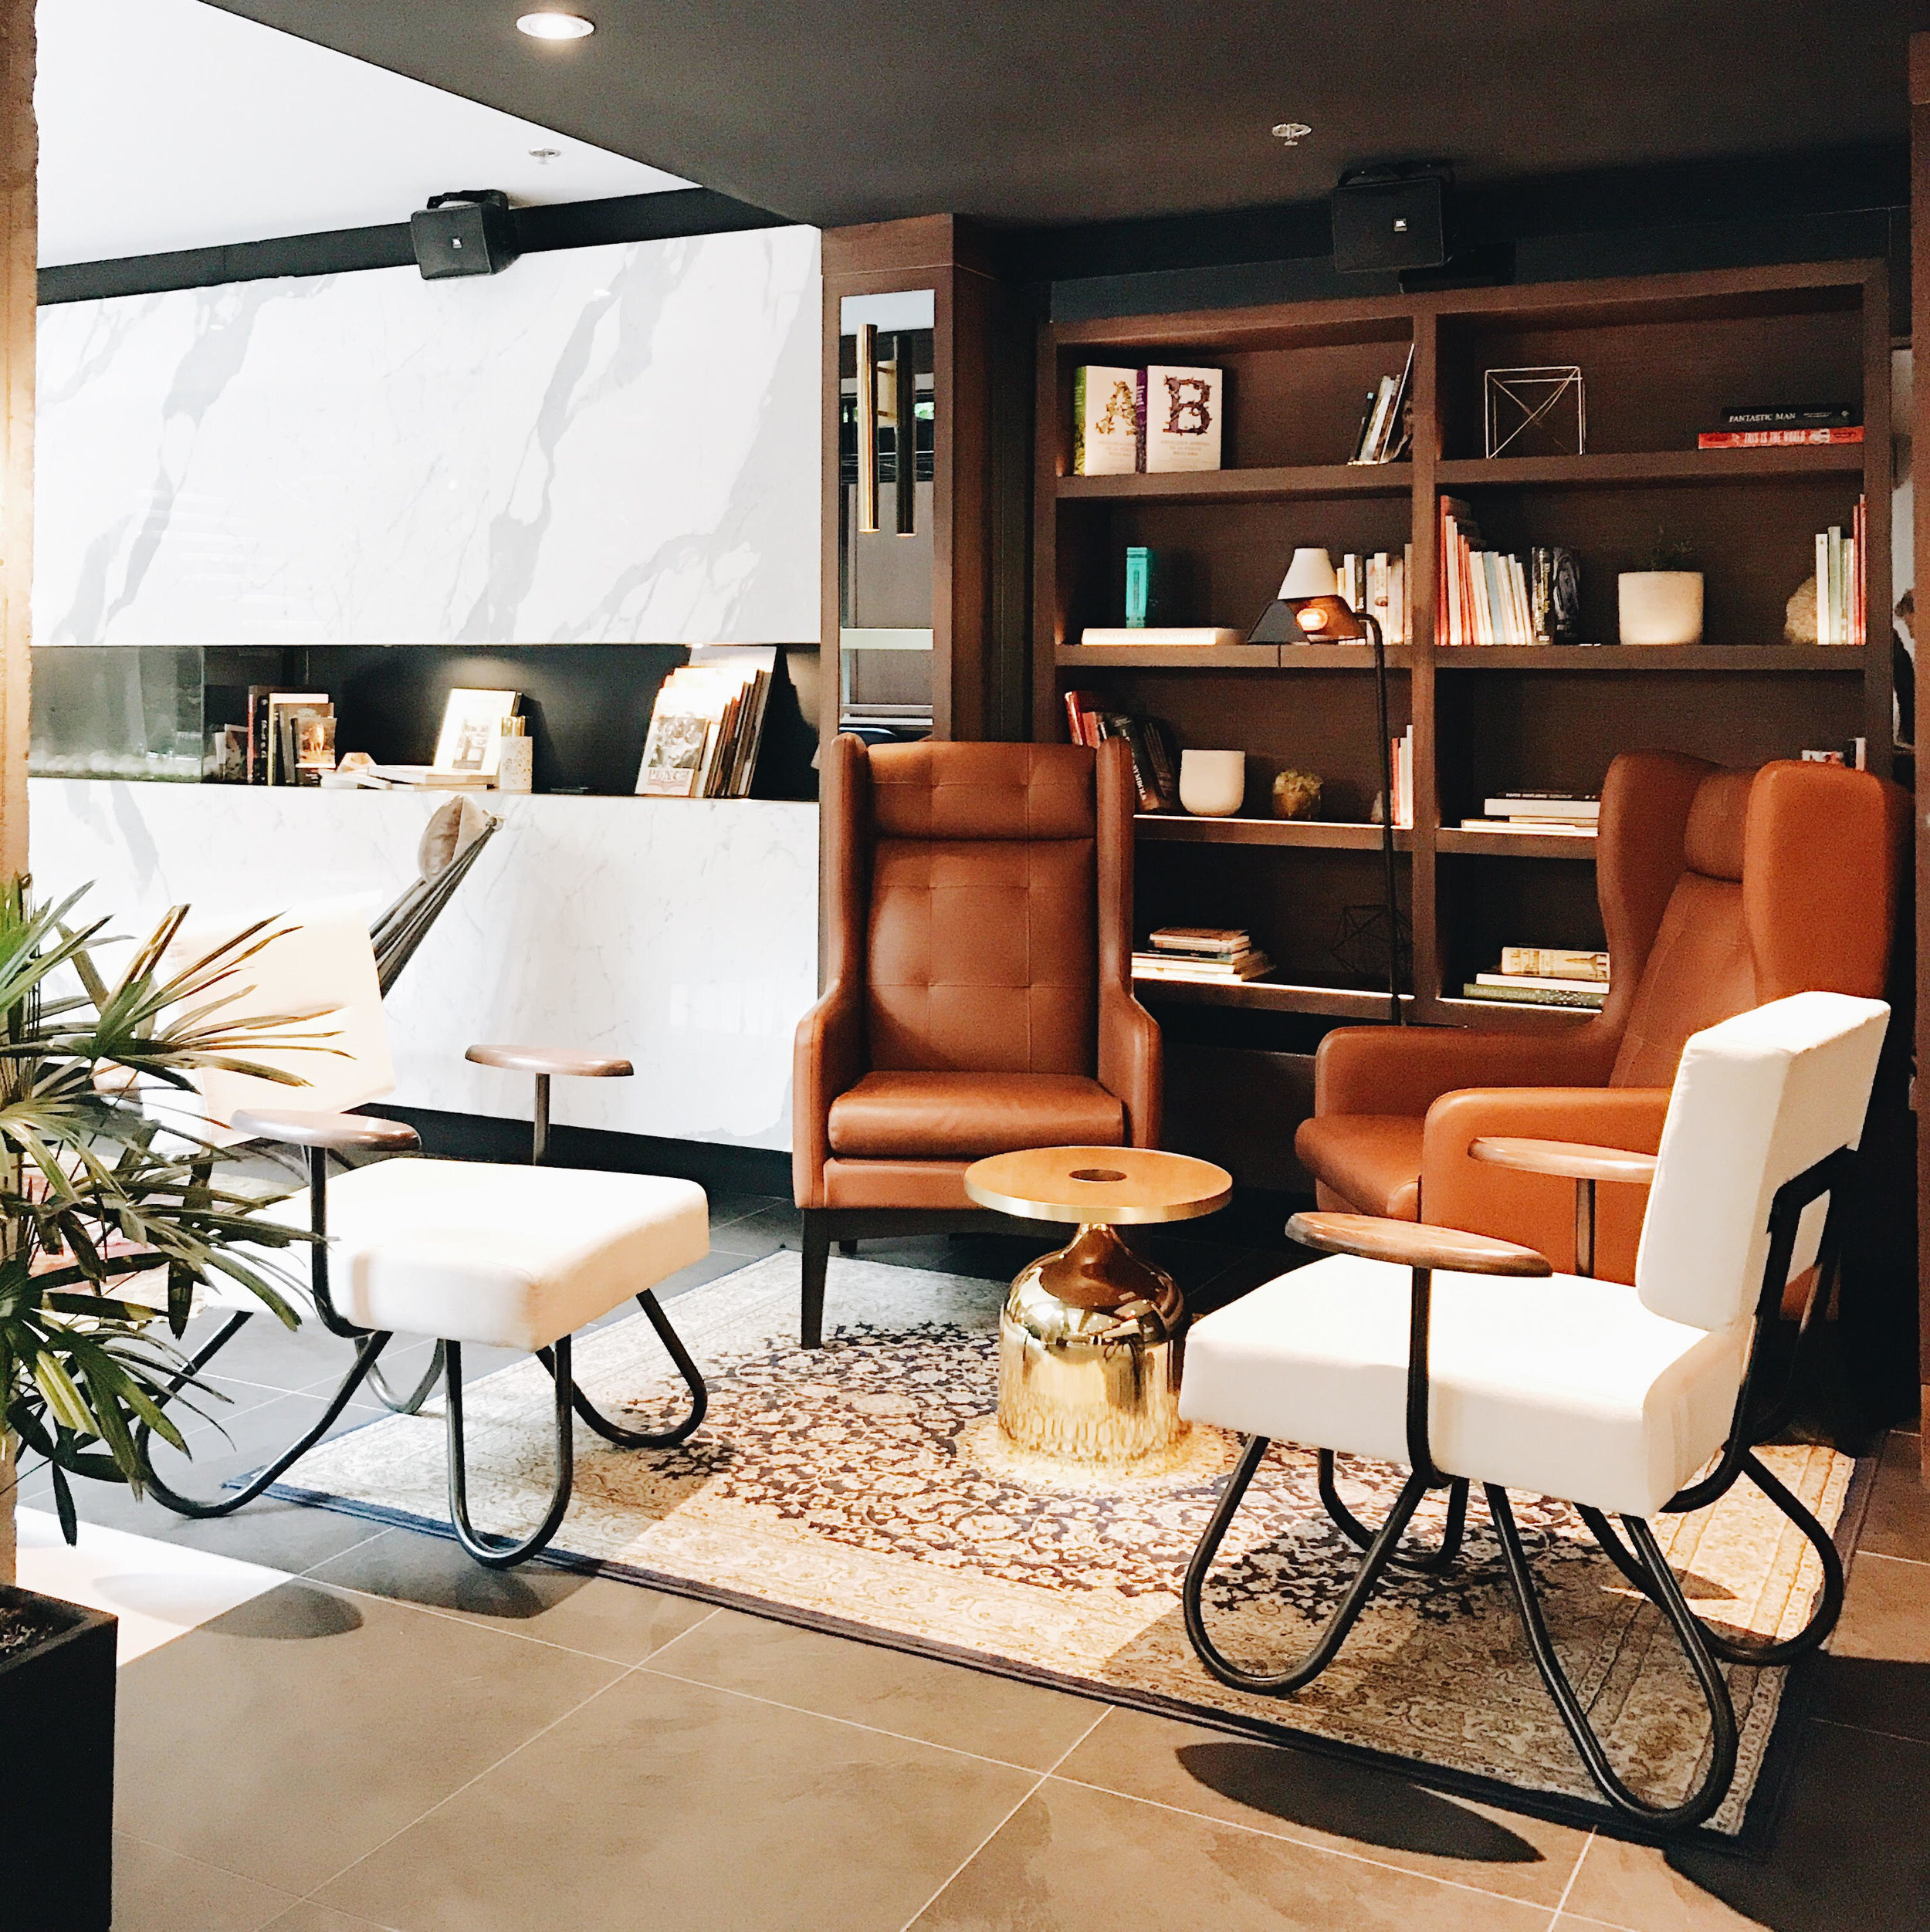 William Gray Hotel, Nyla Free Designs Travels Montreal, Weekend Guide, Travel Tips, Canada, Calgary Interior Designer